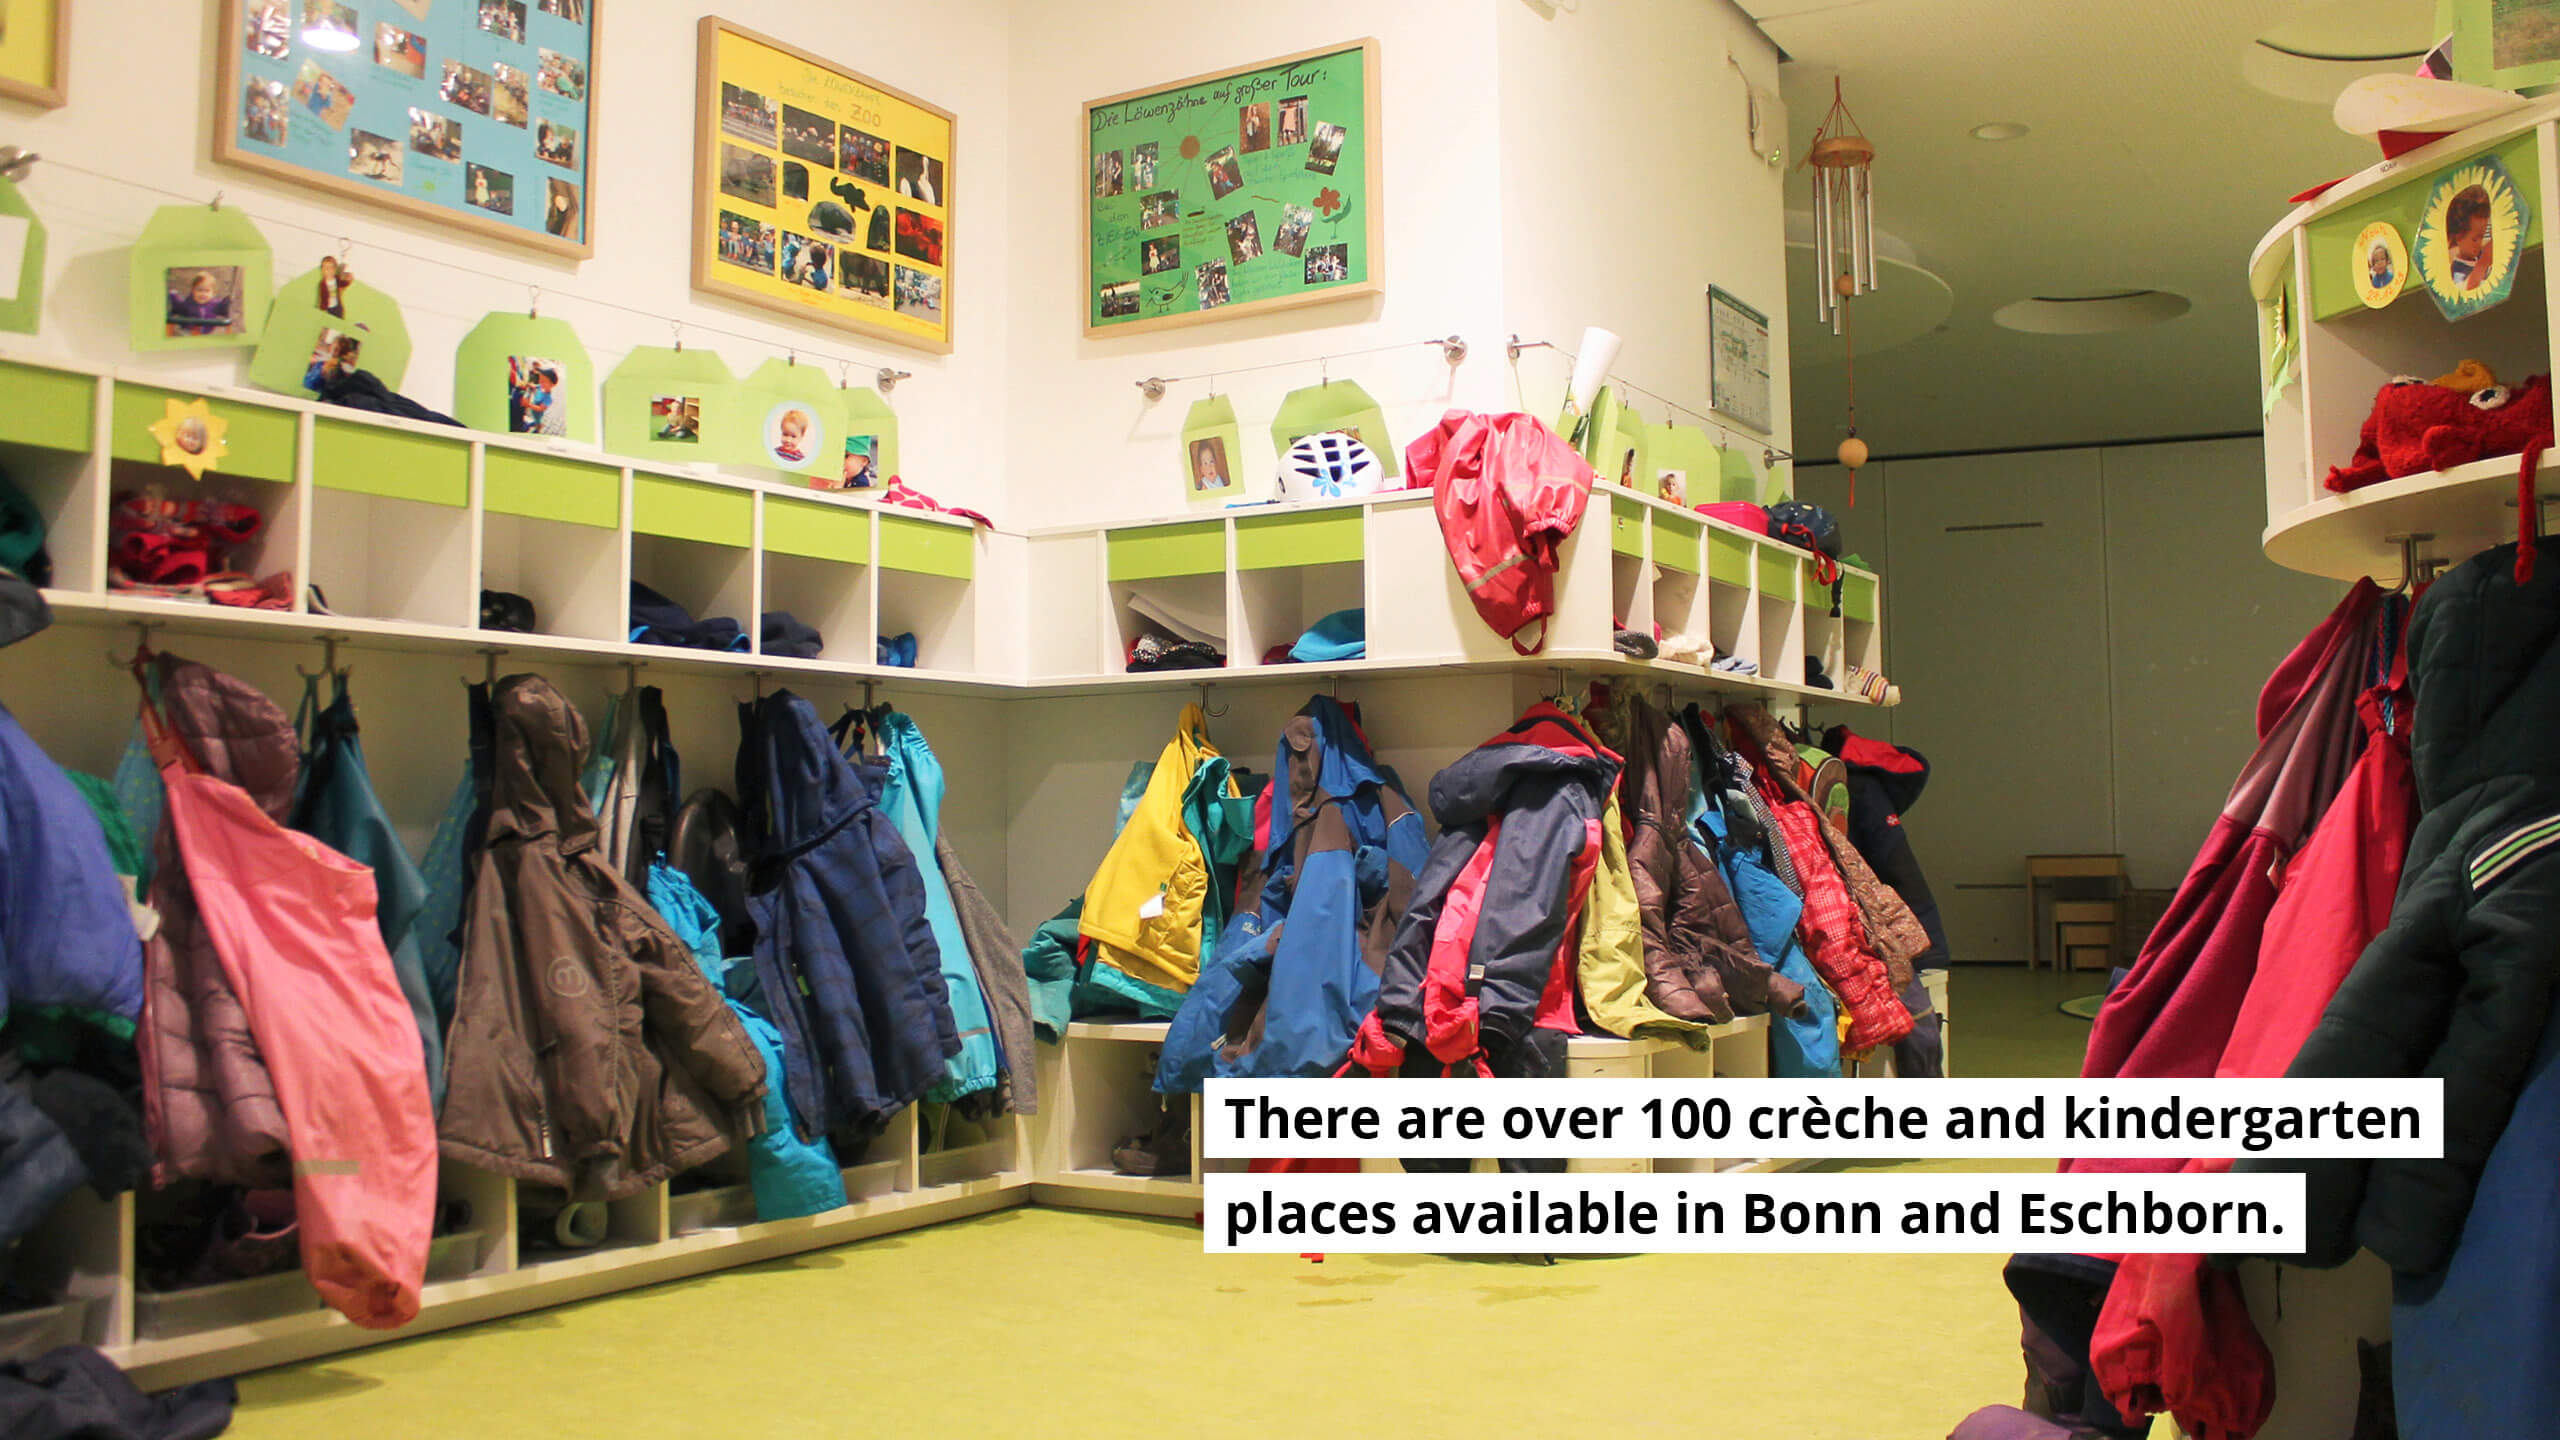 There are over 100 crèche and kindergarten places available in Bonn and Eschborn.